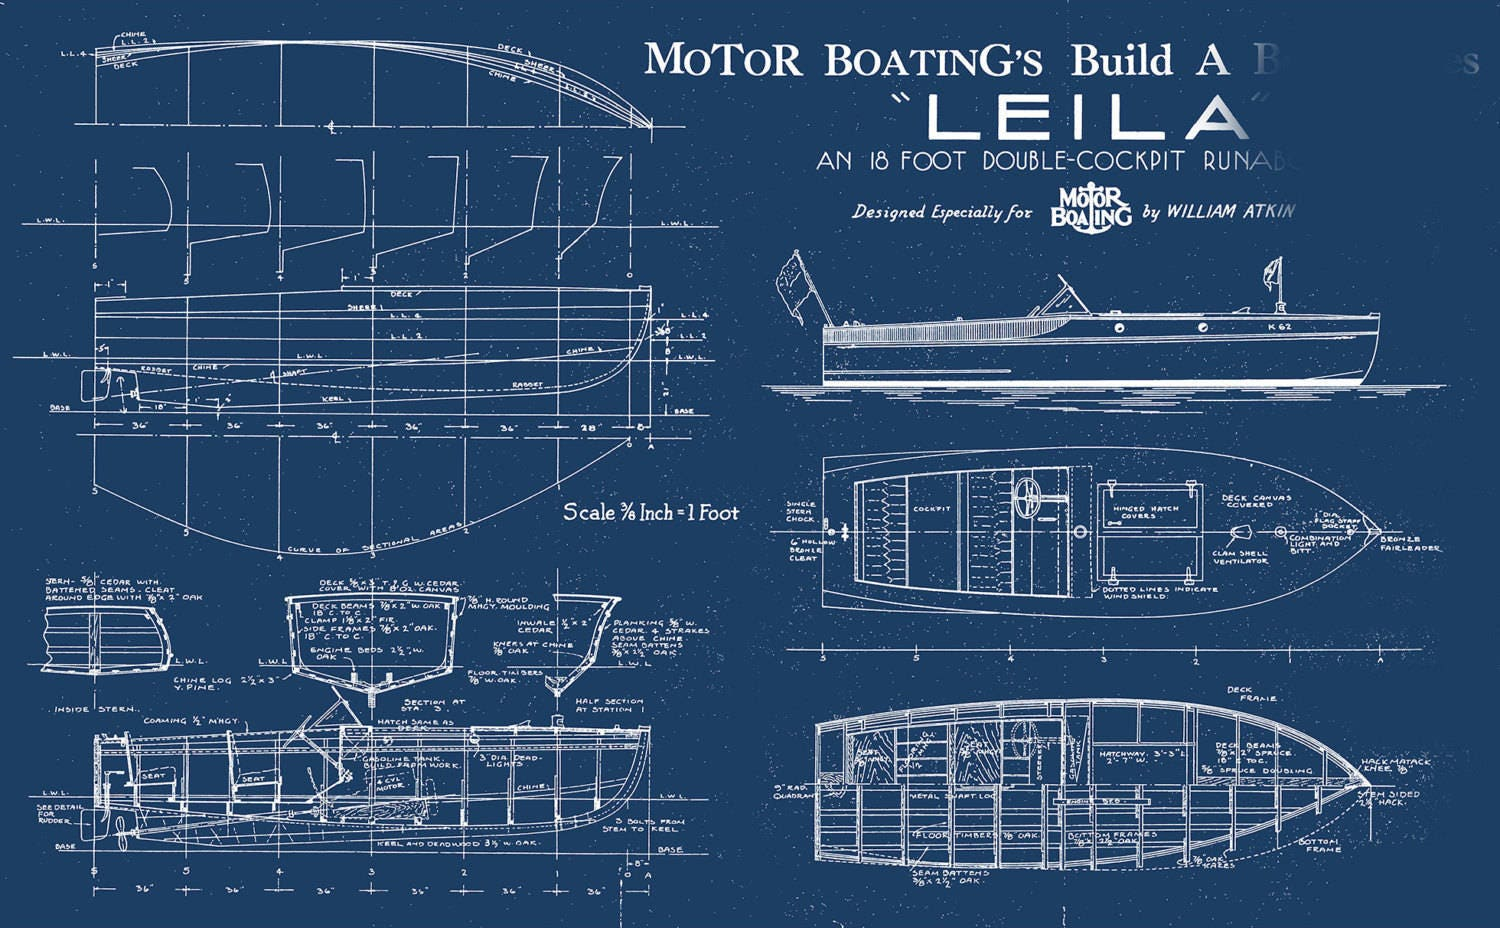 Print of vintage leila boat blueprint from motor boatings build a print of vintage leila boat blueprint from motor boatings build a boat series on your choice of matte paper photo paper or canvas malvernweather Choice Image